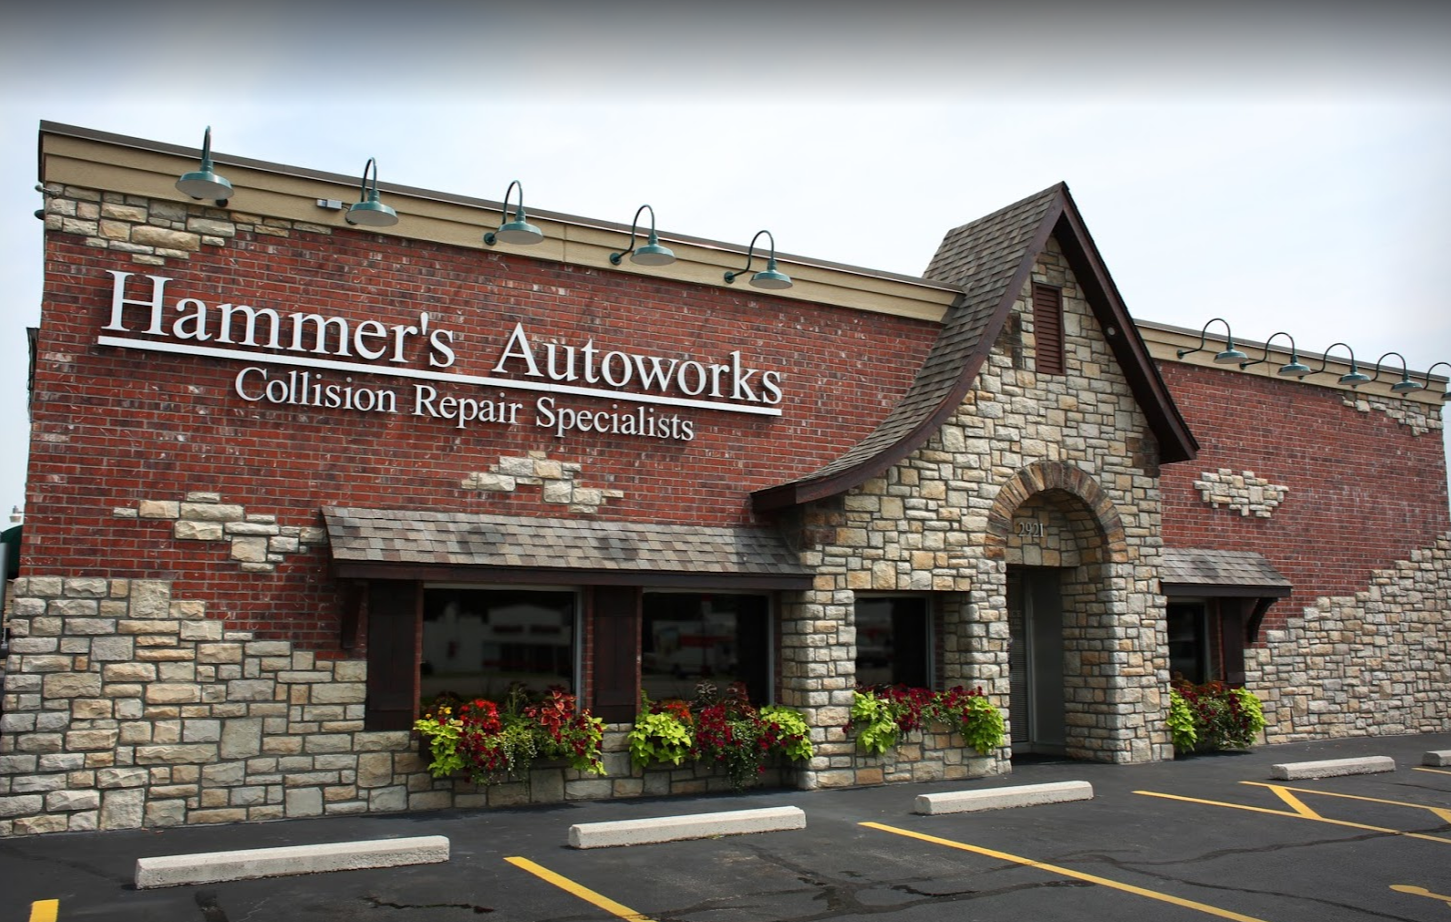 Hammer's Autoworks image 2